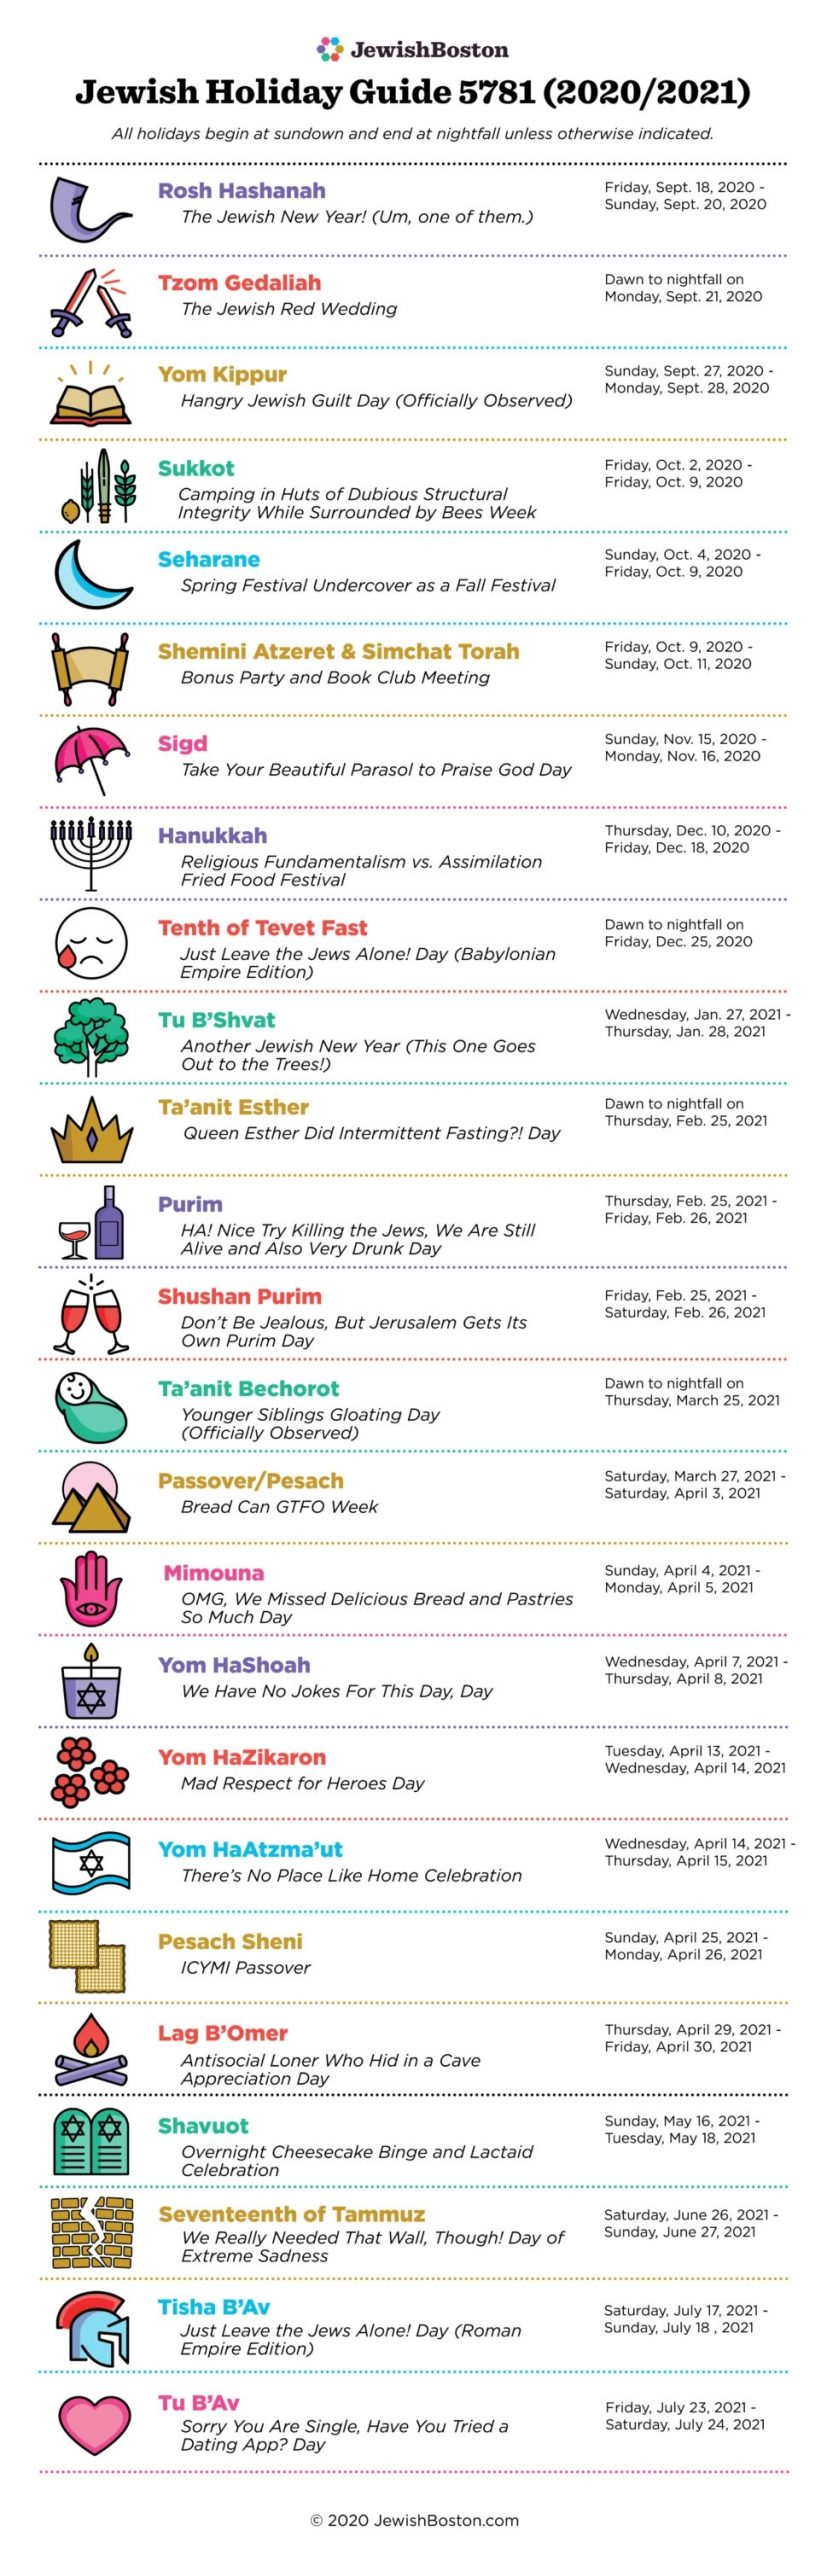 Jewish Holiday Calendar | Jewishboston